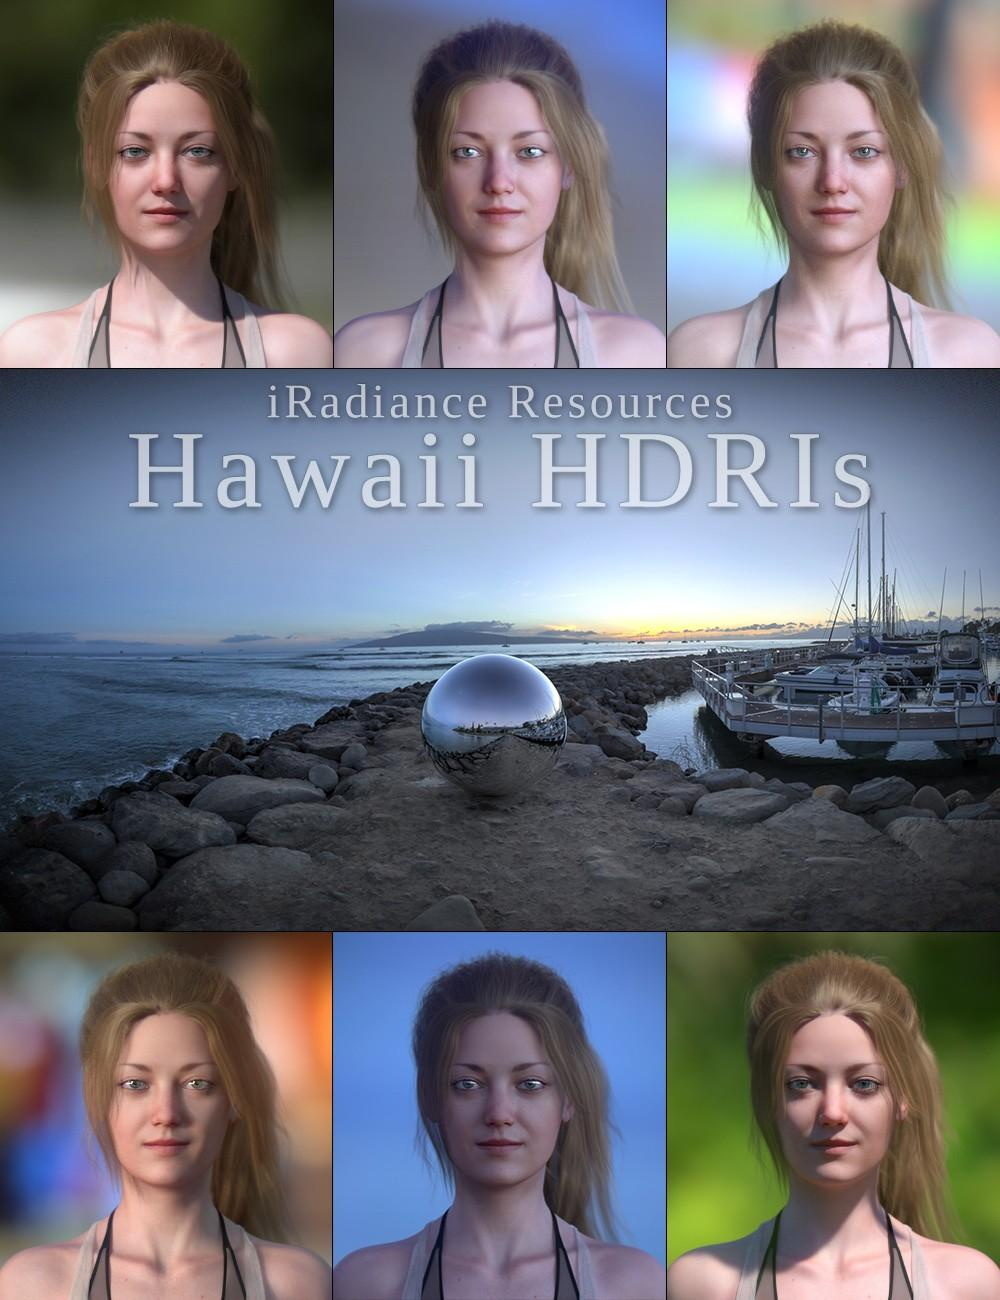 iRadiance HDR Resources - Hawaii